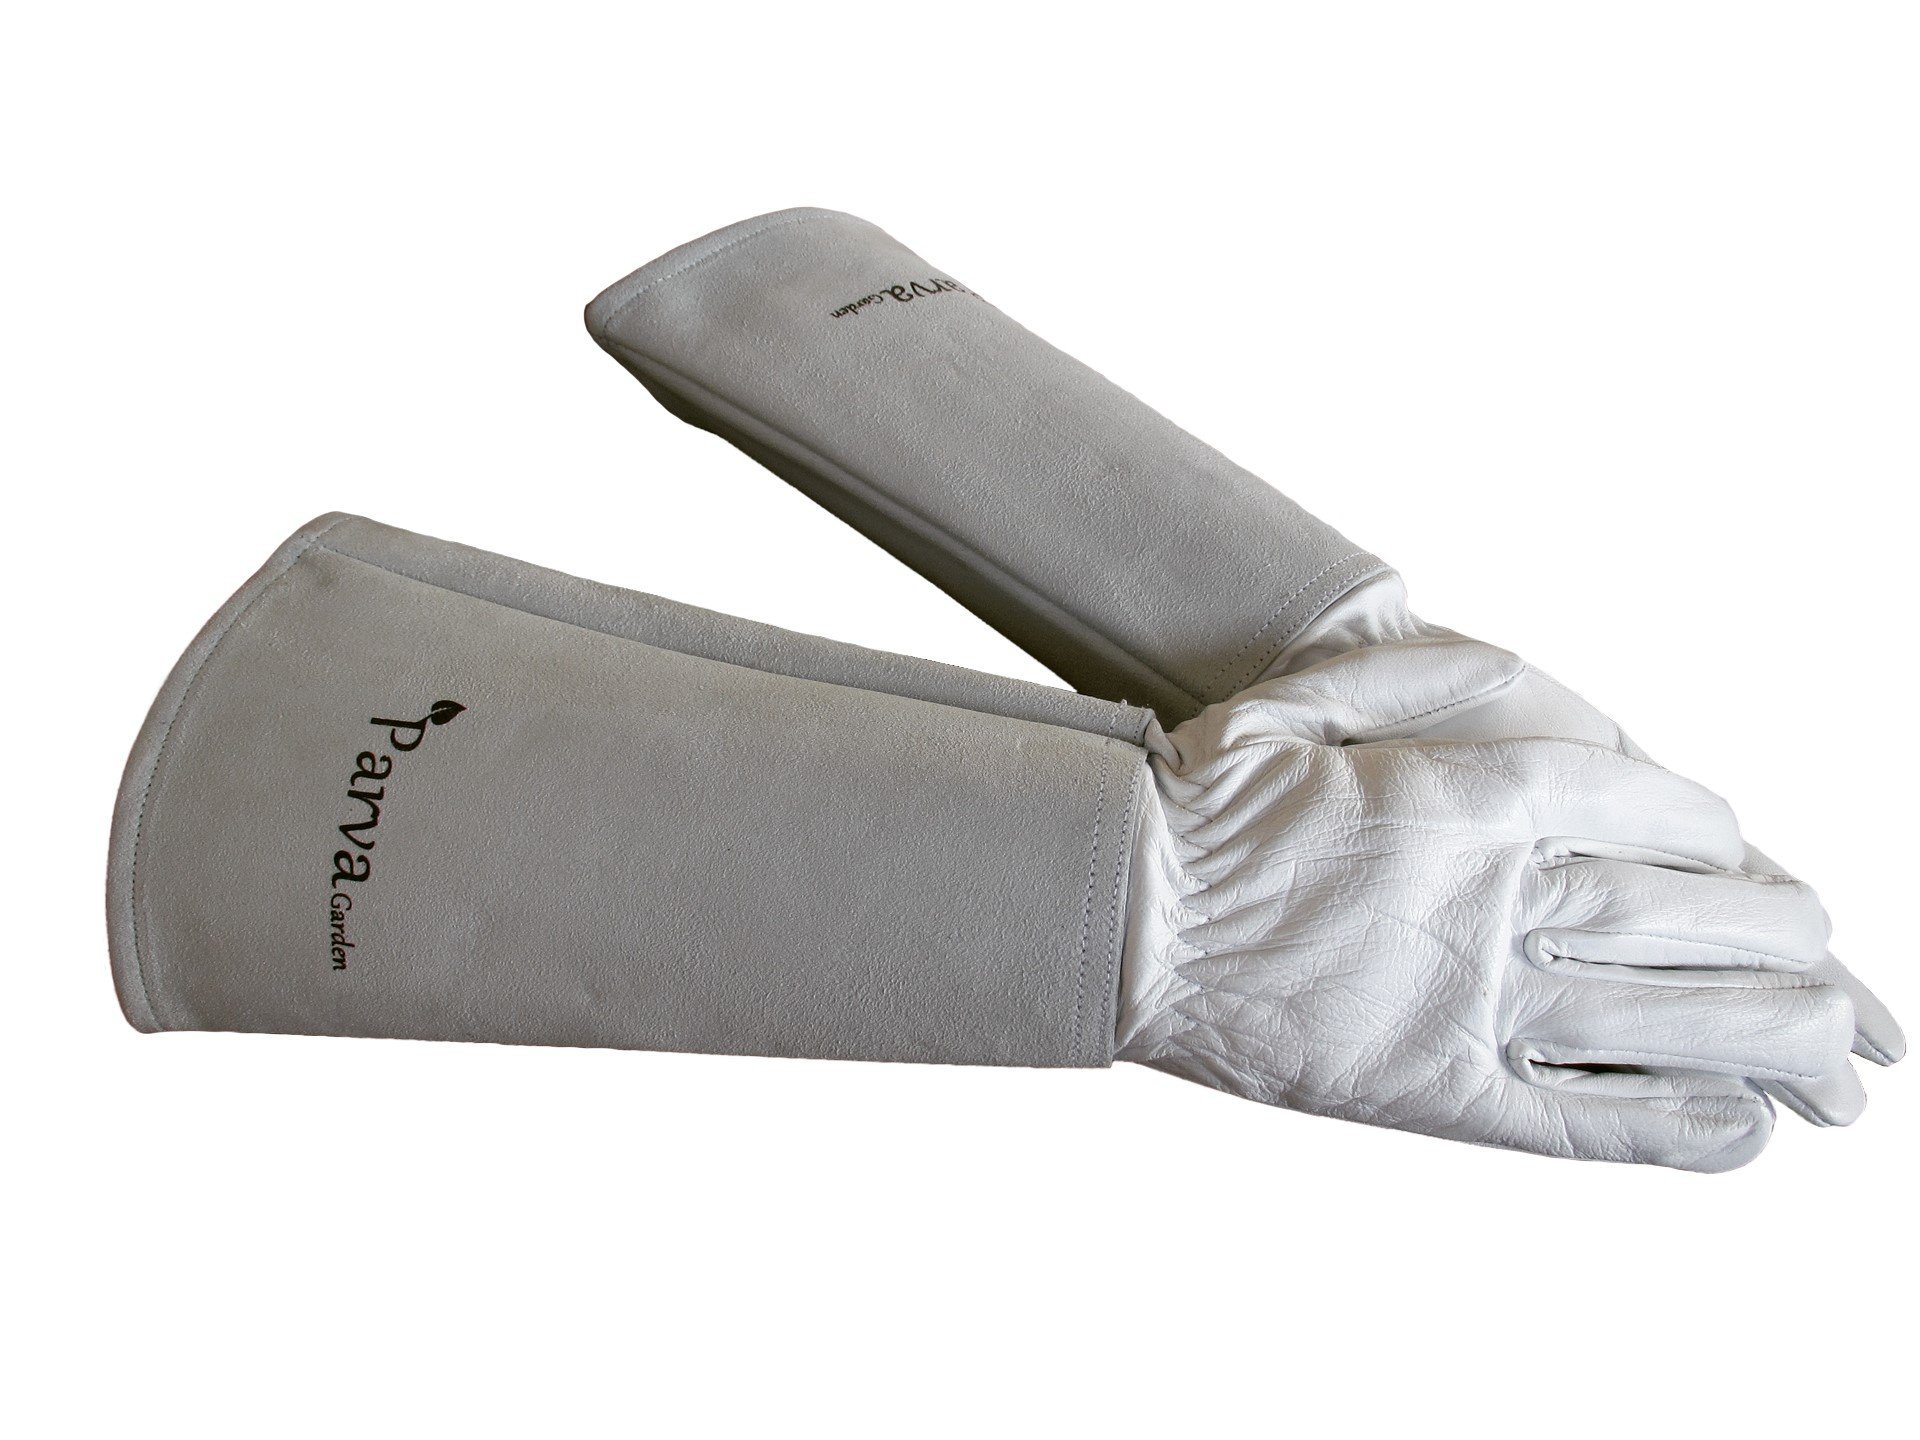 Rose Pruning Thorn Proof Gloves - Thorny Cacti, Blackberry Brambles, Prickly Plants - Leather Gloves with Canvas Gauntlet for Men and Women Gardening Gloves (Medium Neutral)